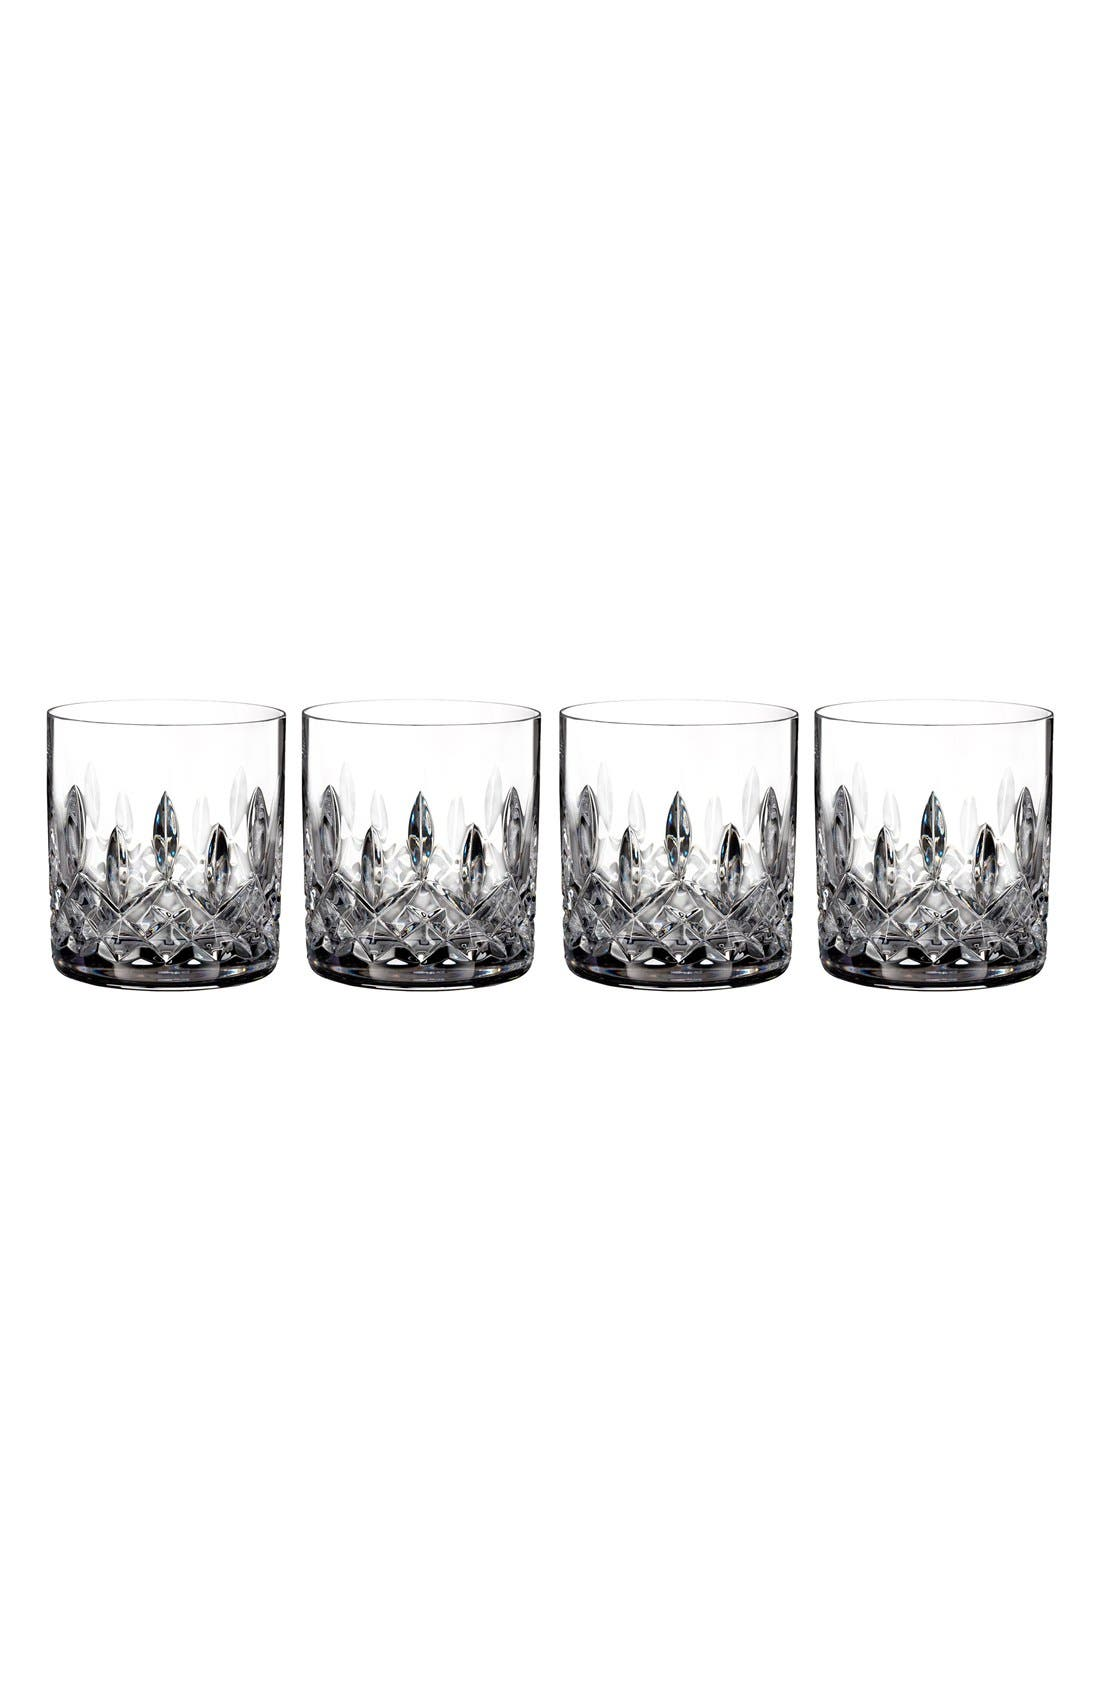 WATERFORD 'Lismore' Lead Crystal Straight Sided Tumblers